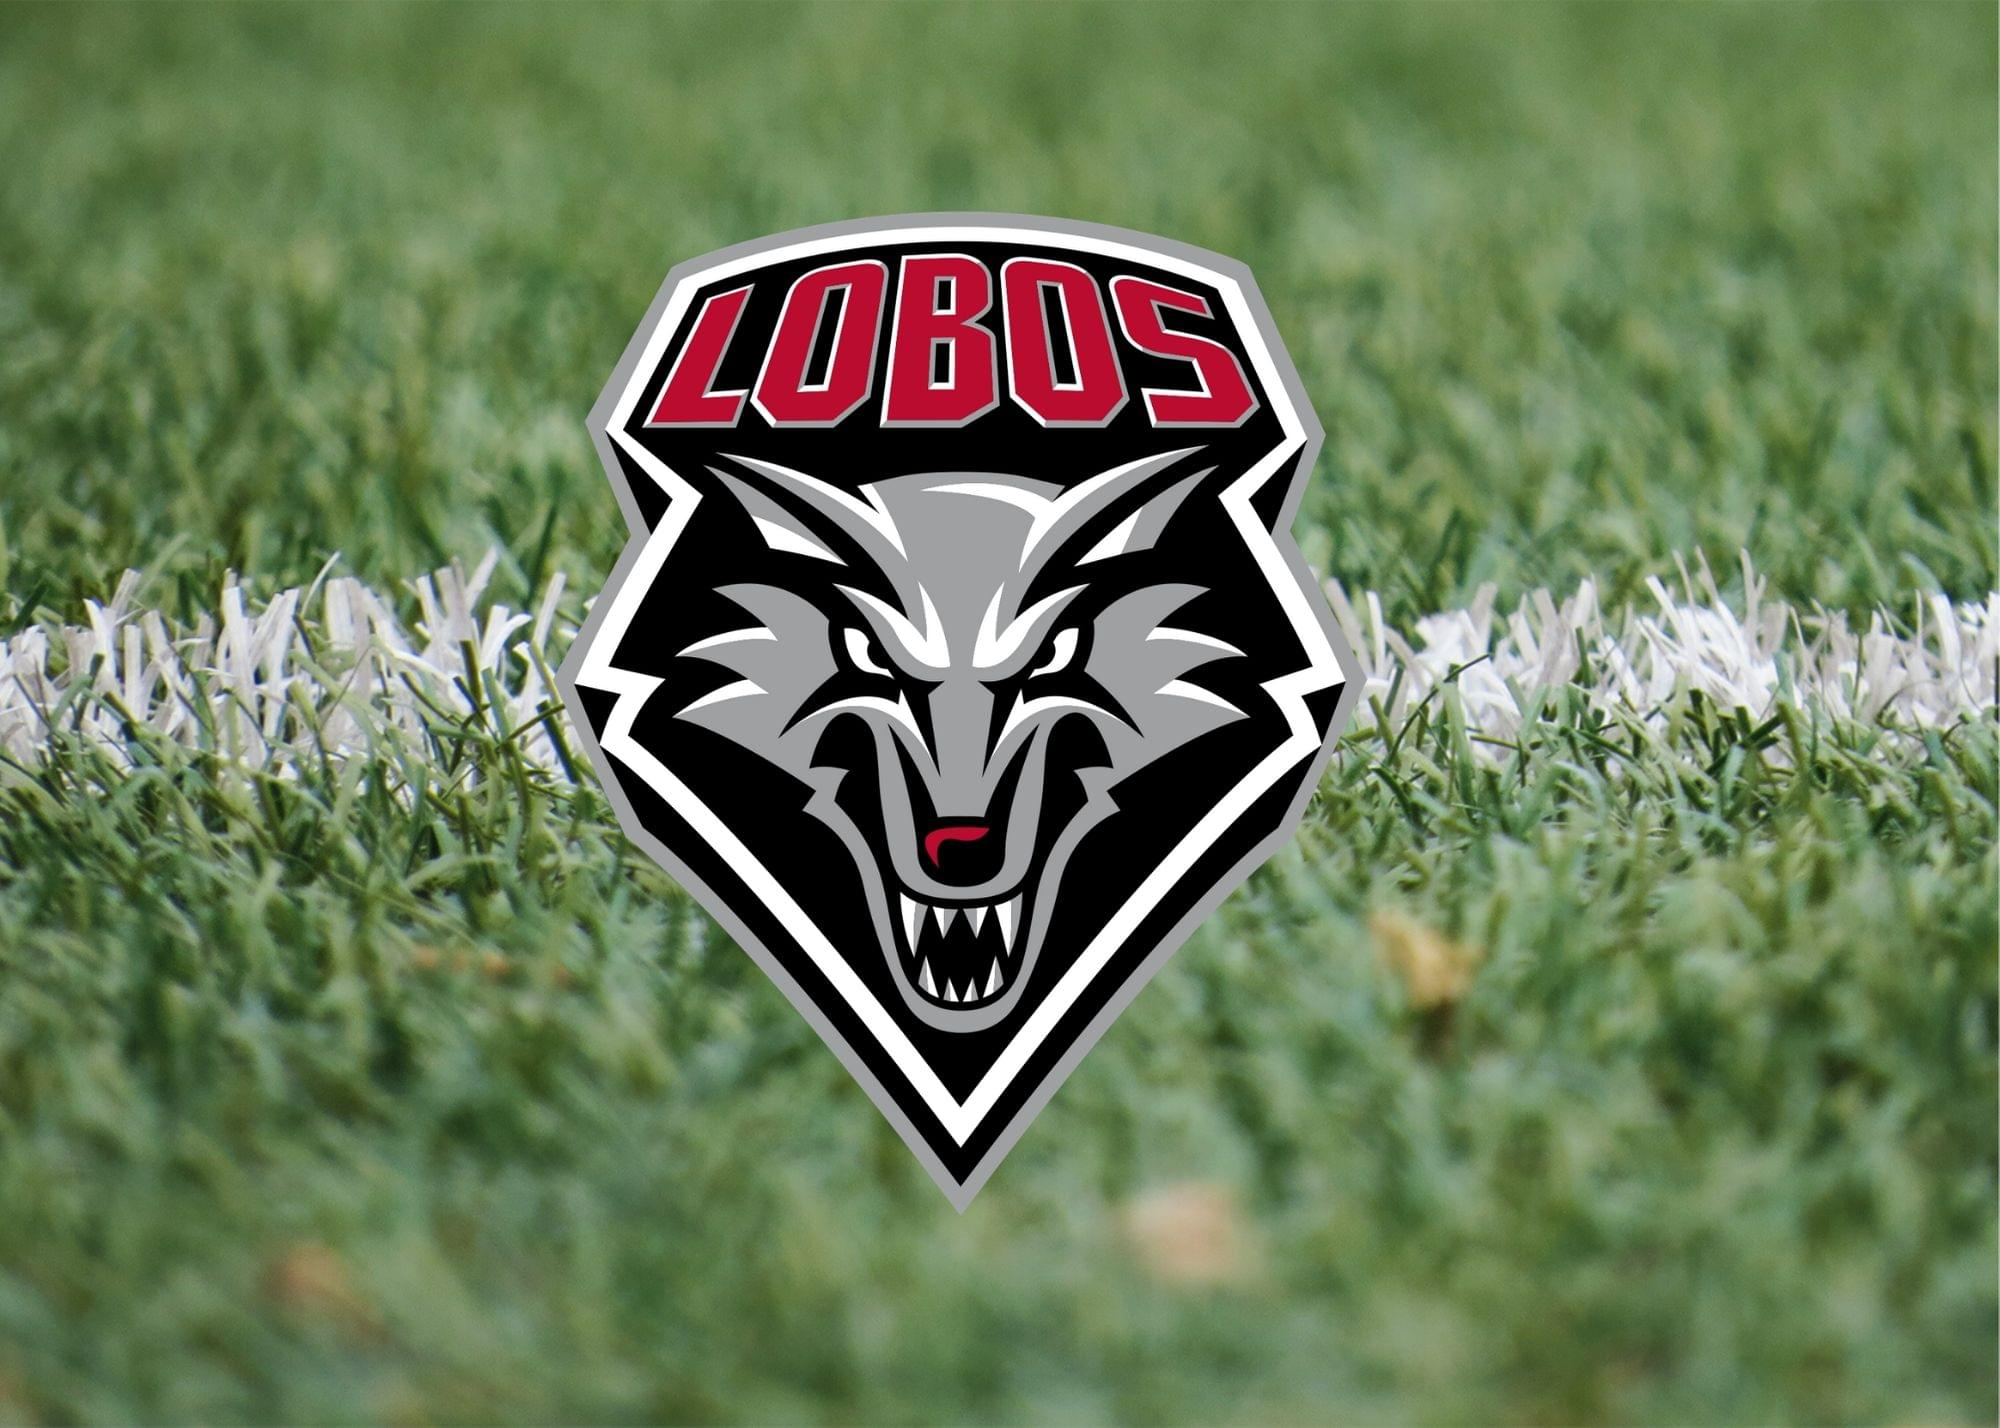 No Fans Allowed: UNM to limit sporting events and practices to essential personnel